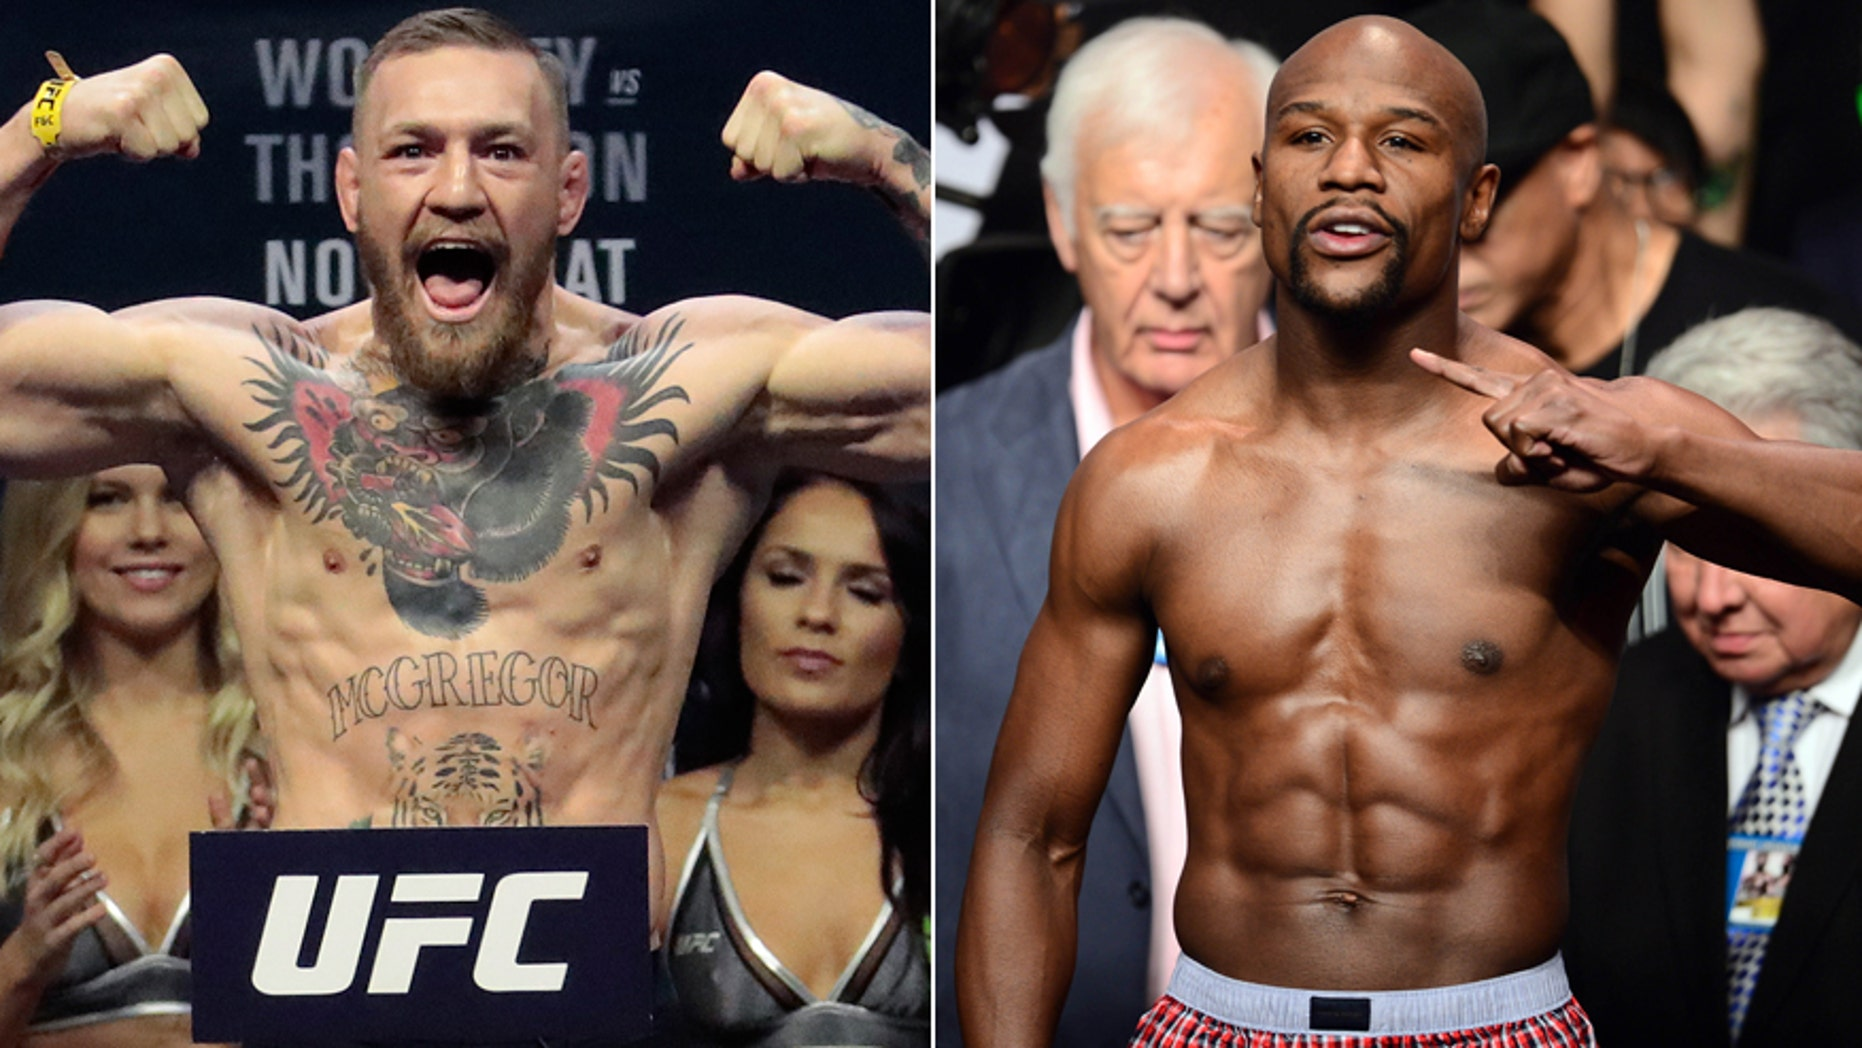 Although there is no deal for a fight yet, UFC Lightweight Champion Conor McGregor, left, and boxing legend Floyd Mayweather, Jr., have been trash-talking each other.